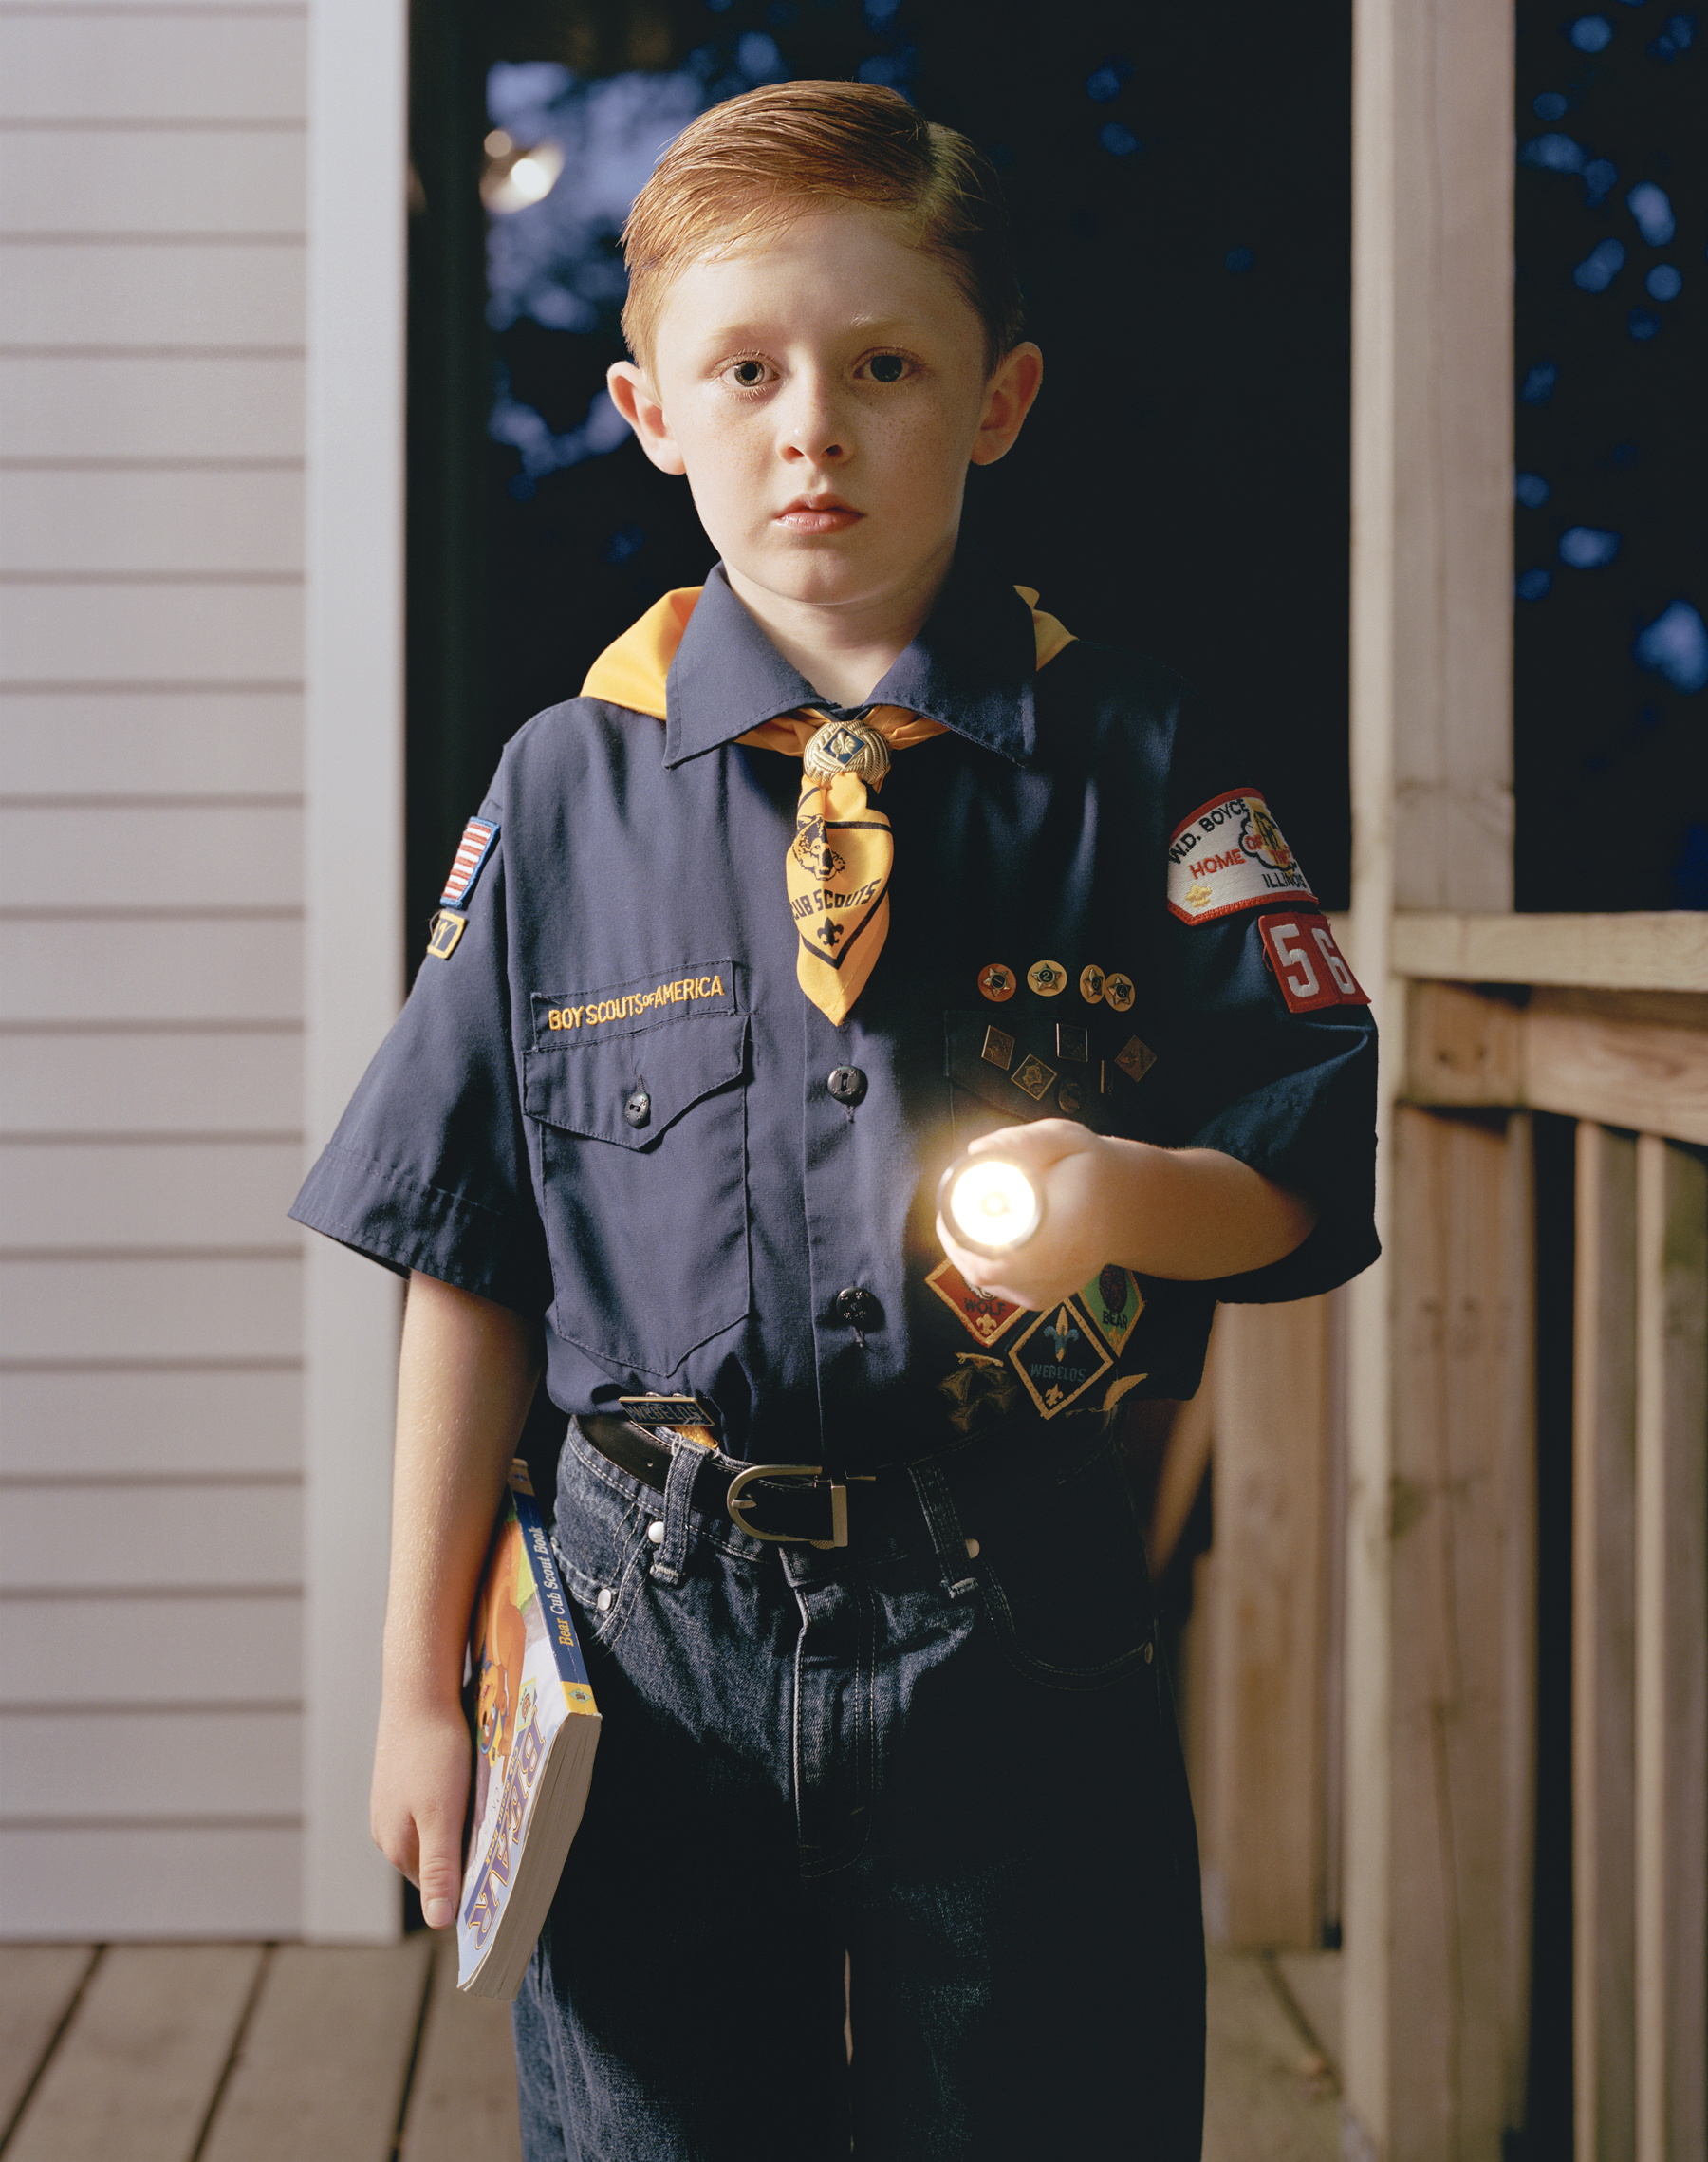 Untitled (Boyscout)